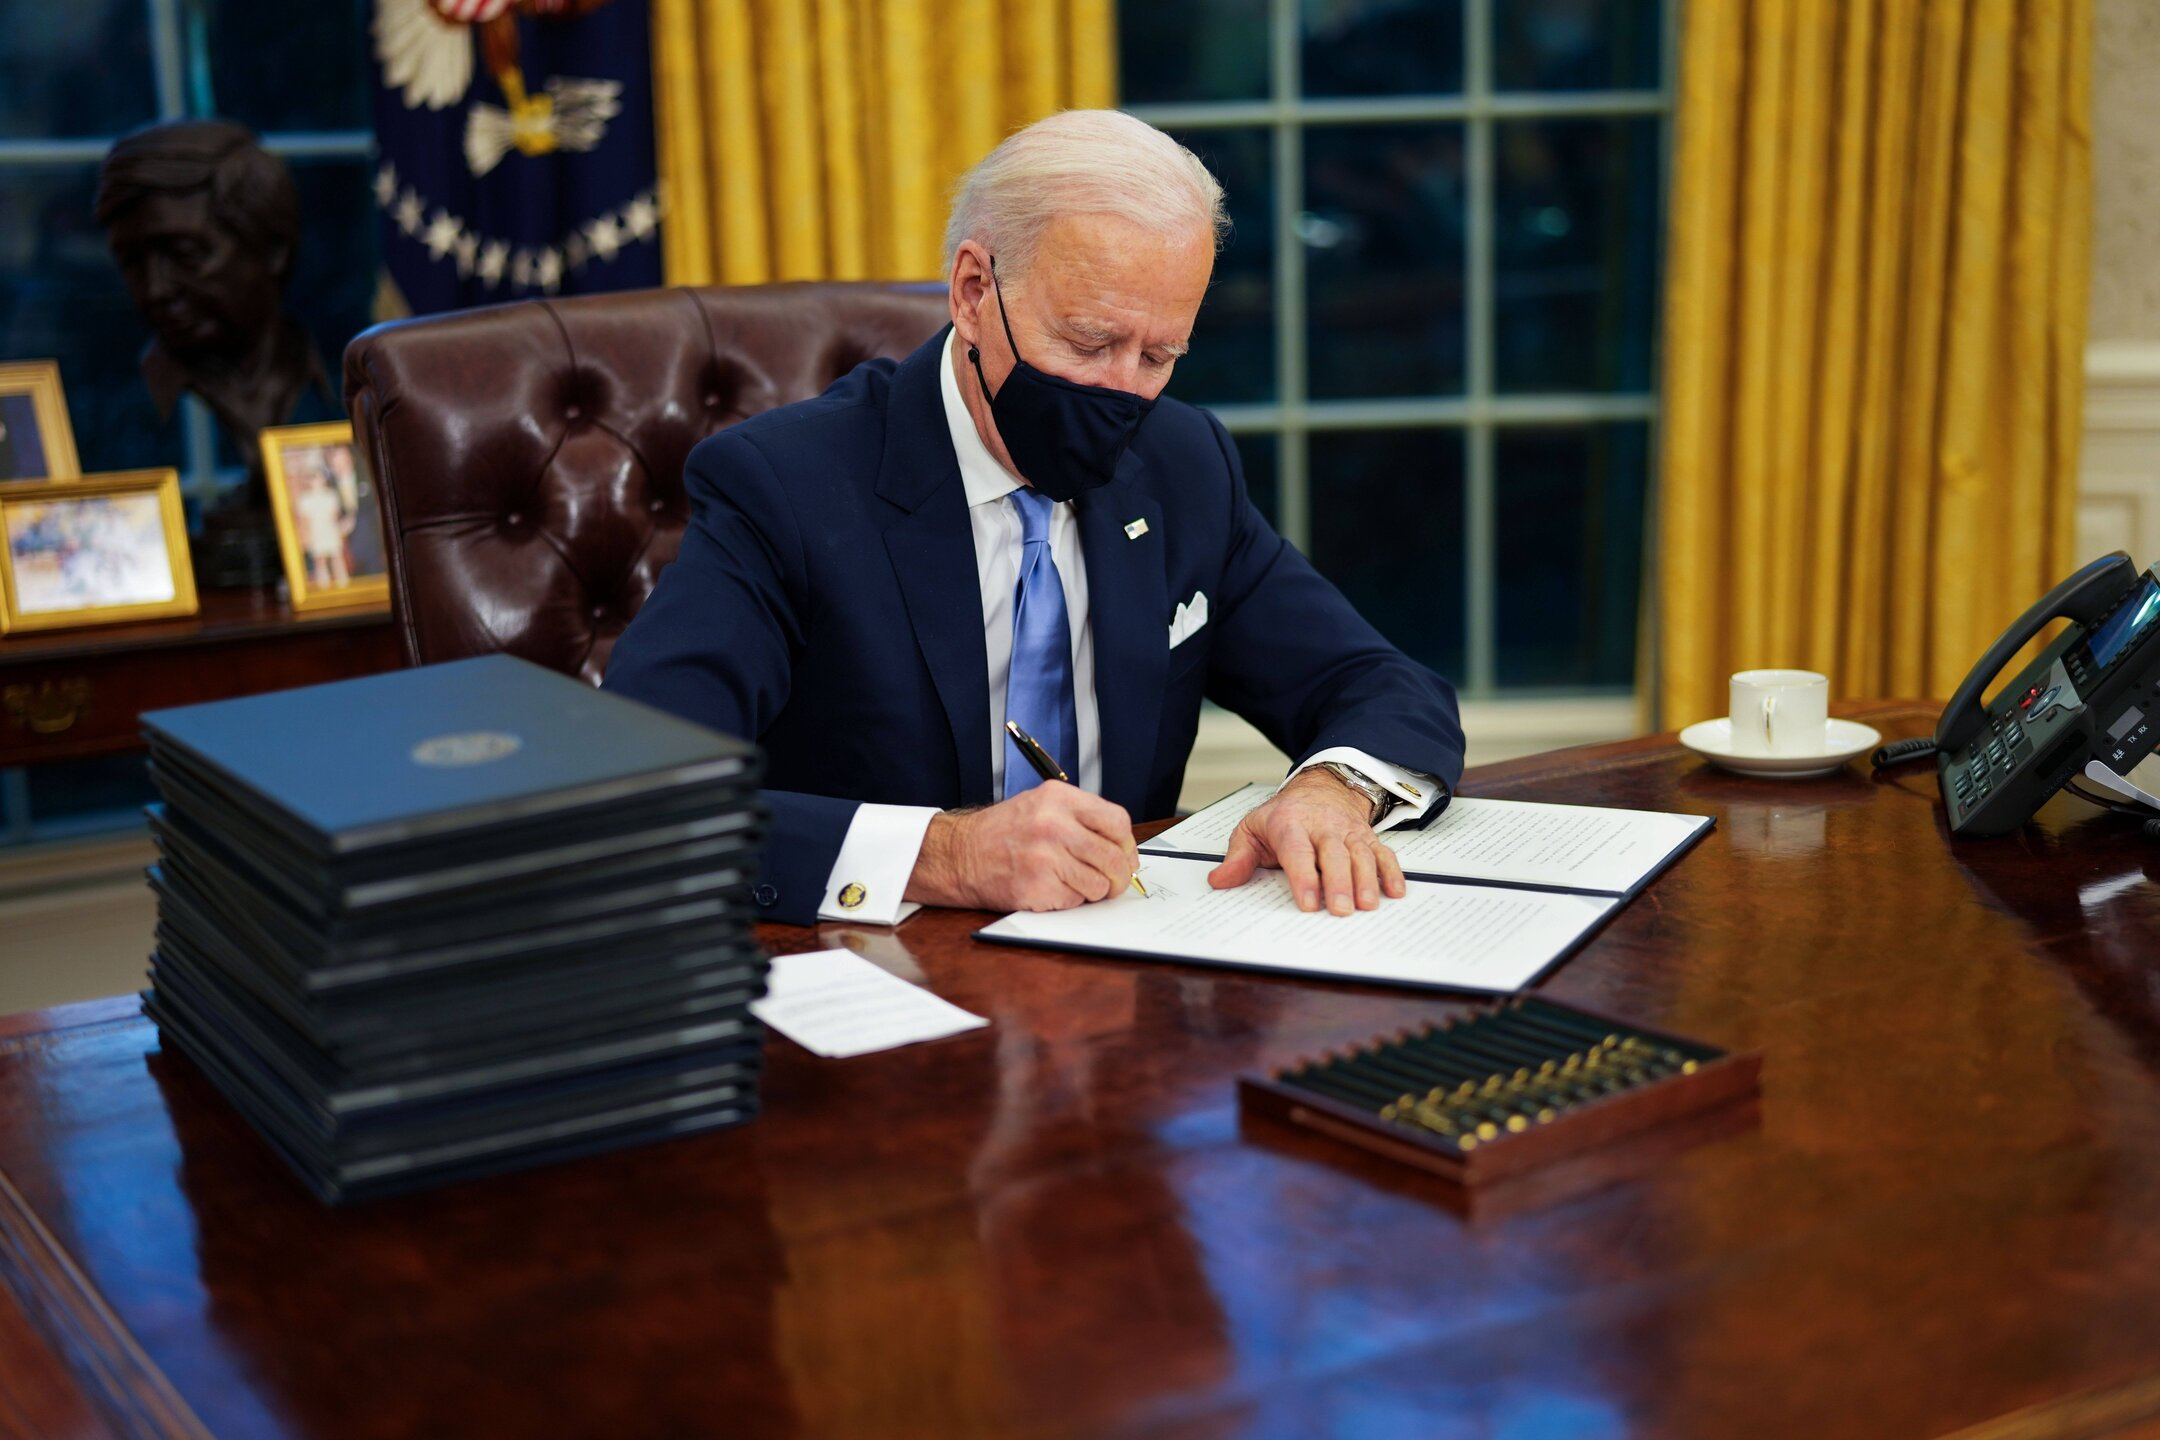 Biden used a secret message on the White House website to put out a call for coders